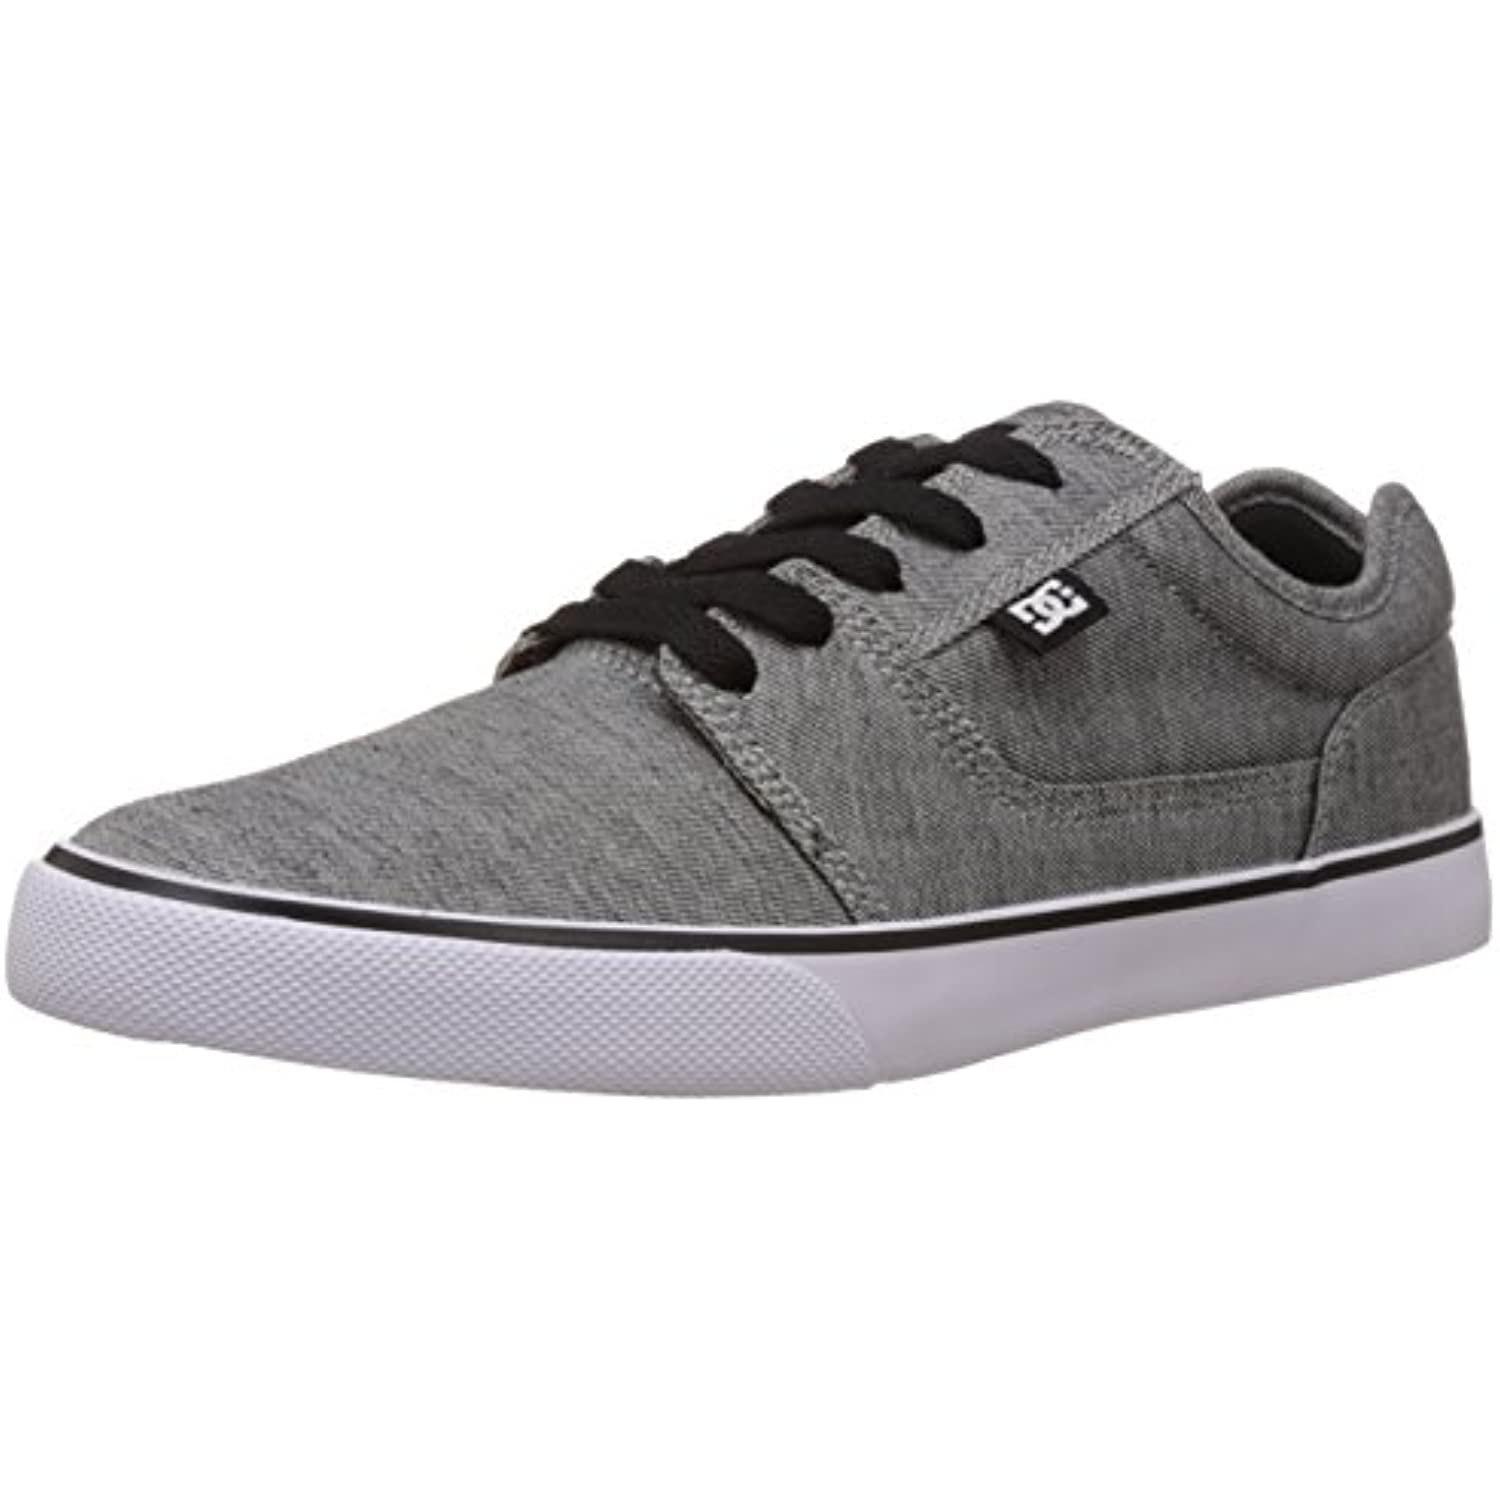 Dc Shoe Shoes Homme Se M Basses Tx Tonik Baskets PRrUZP